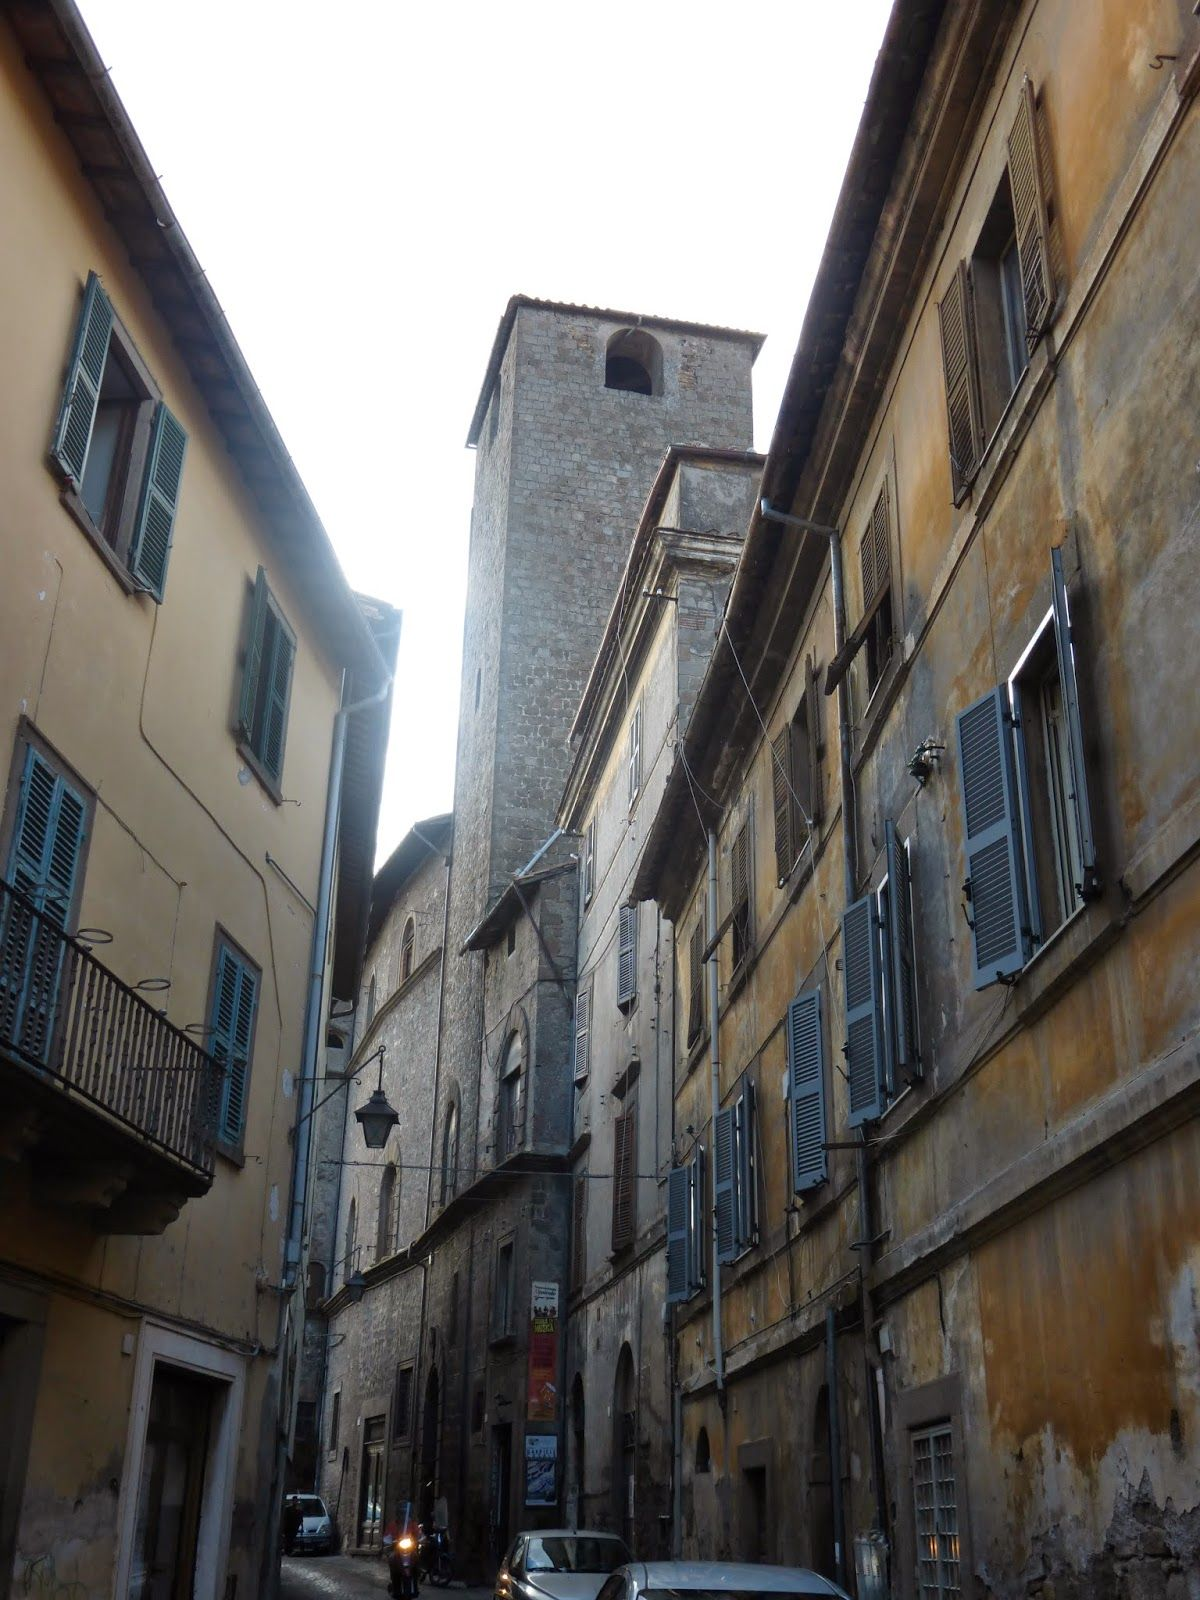 50 Years In Italy: Living in a Renaissance Palazzo in Italy: Viterbo